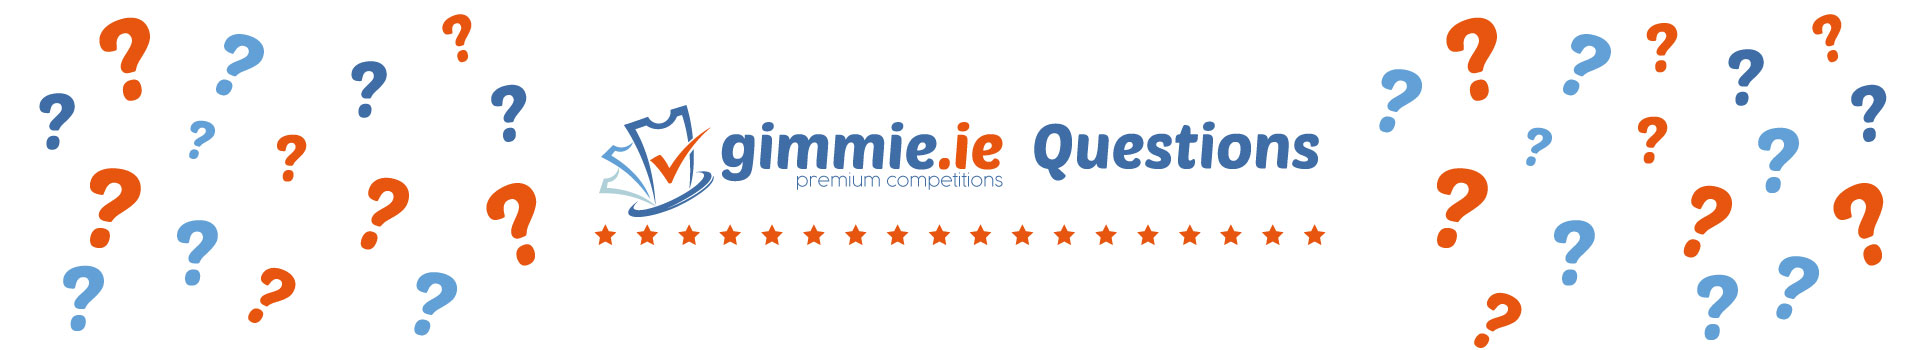 gimmie.ie questions